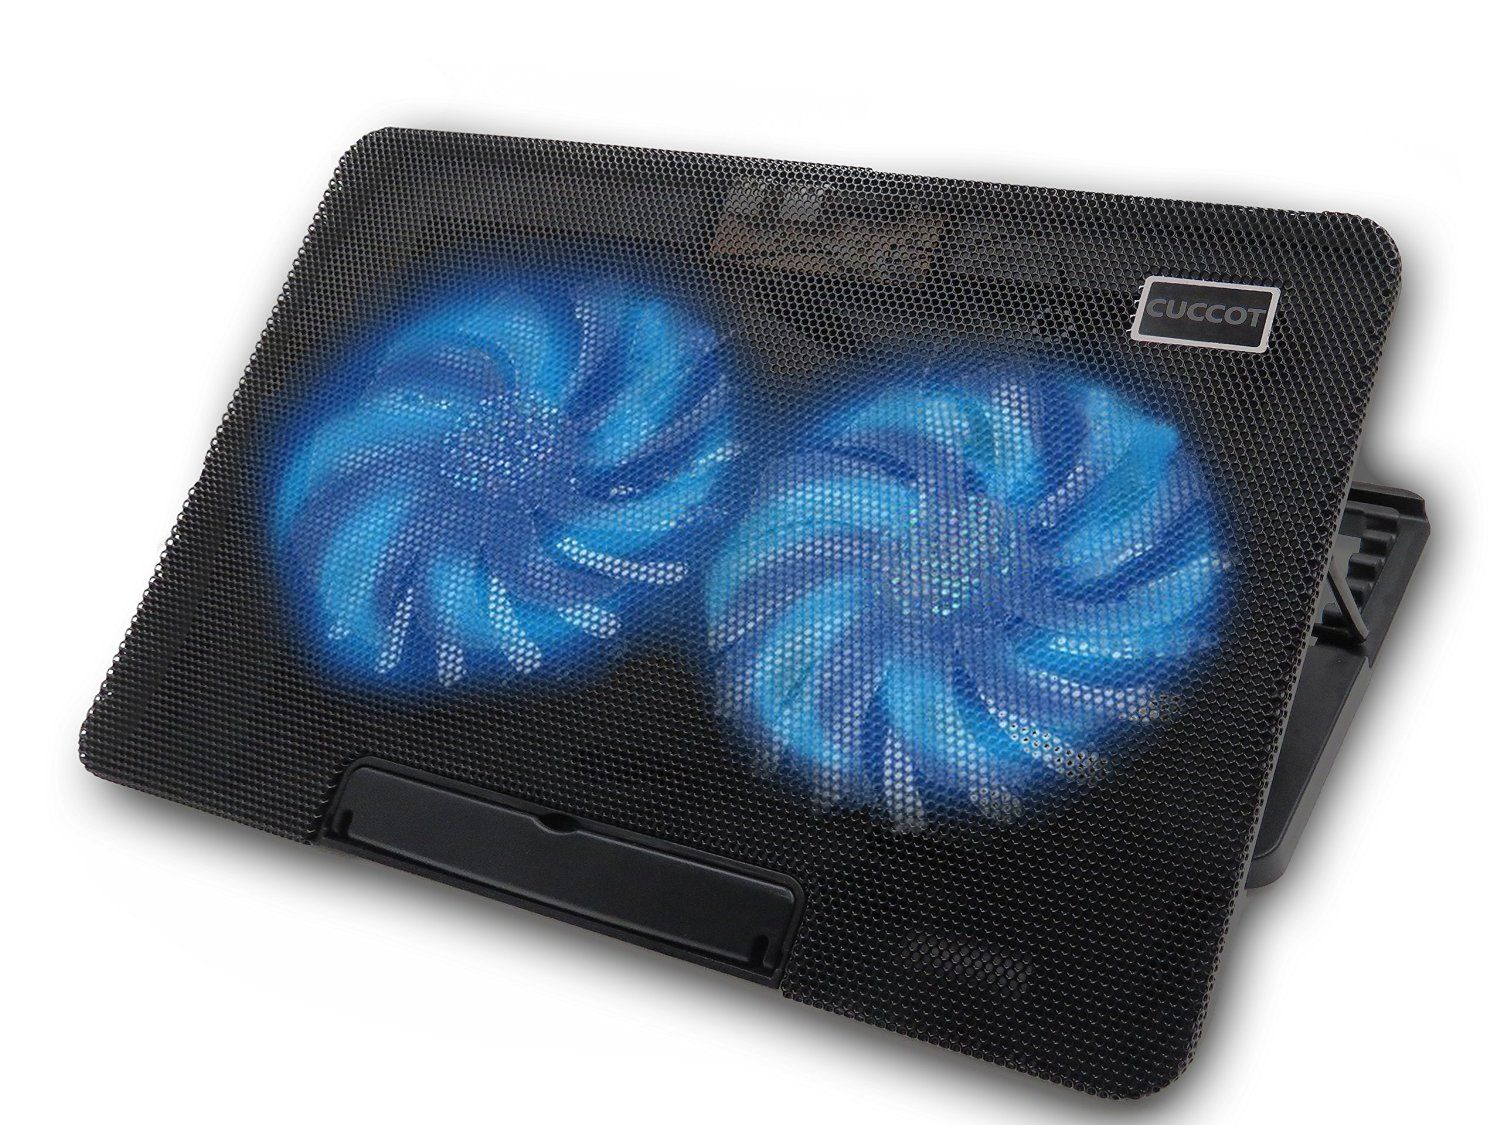 Amazon Com Cuccot 11 15 6 Inches Portable Laptop Cooling Pad